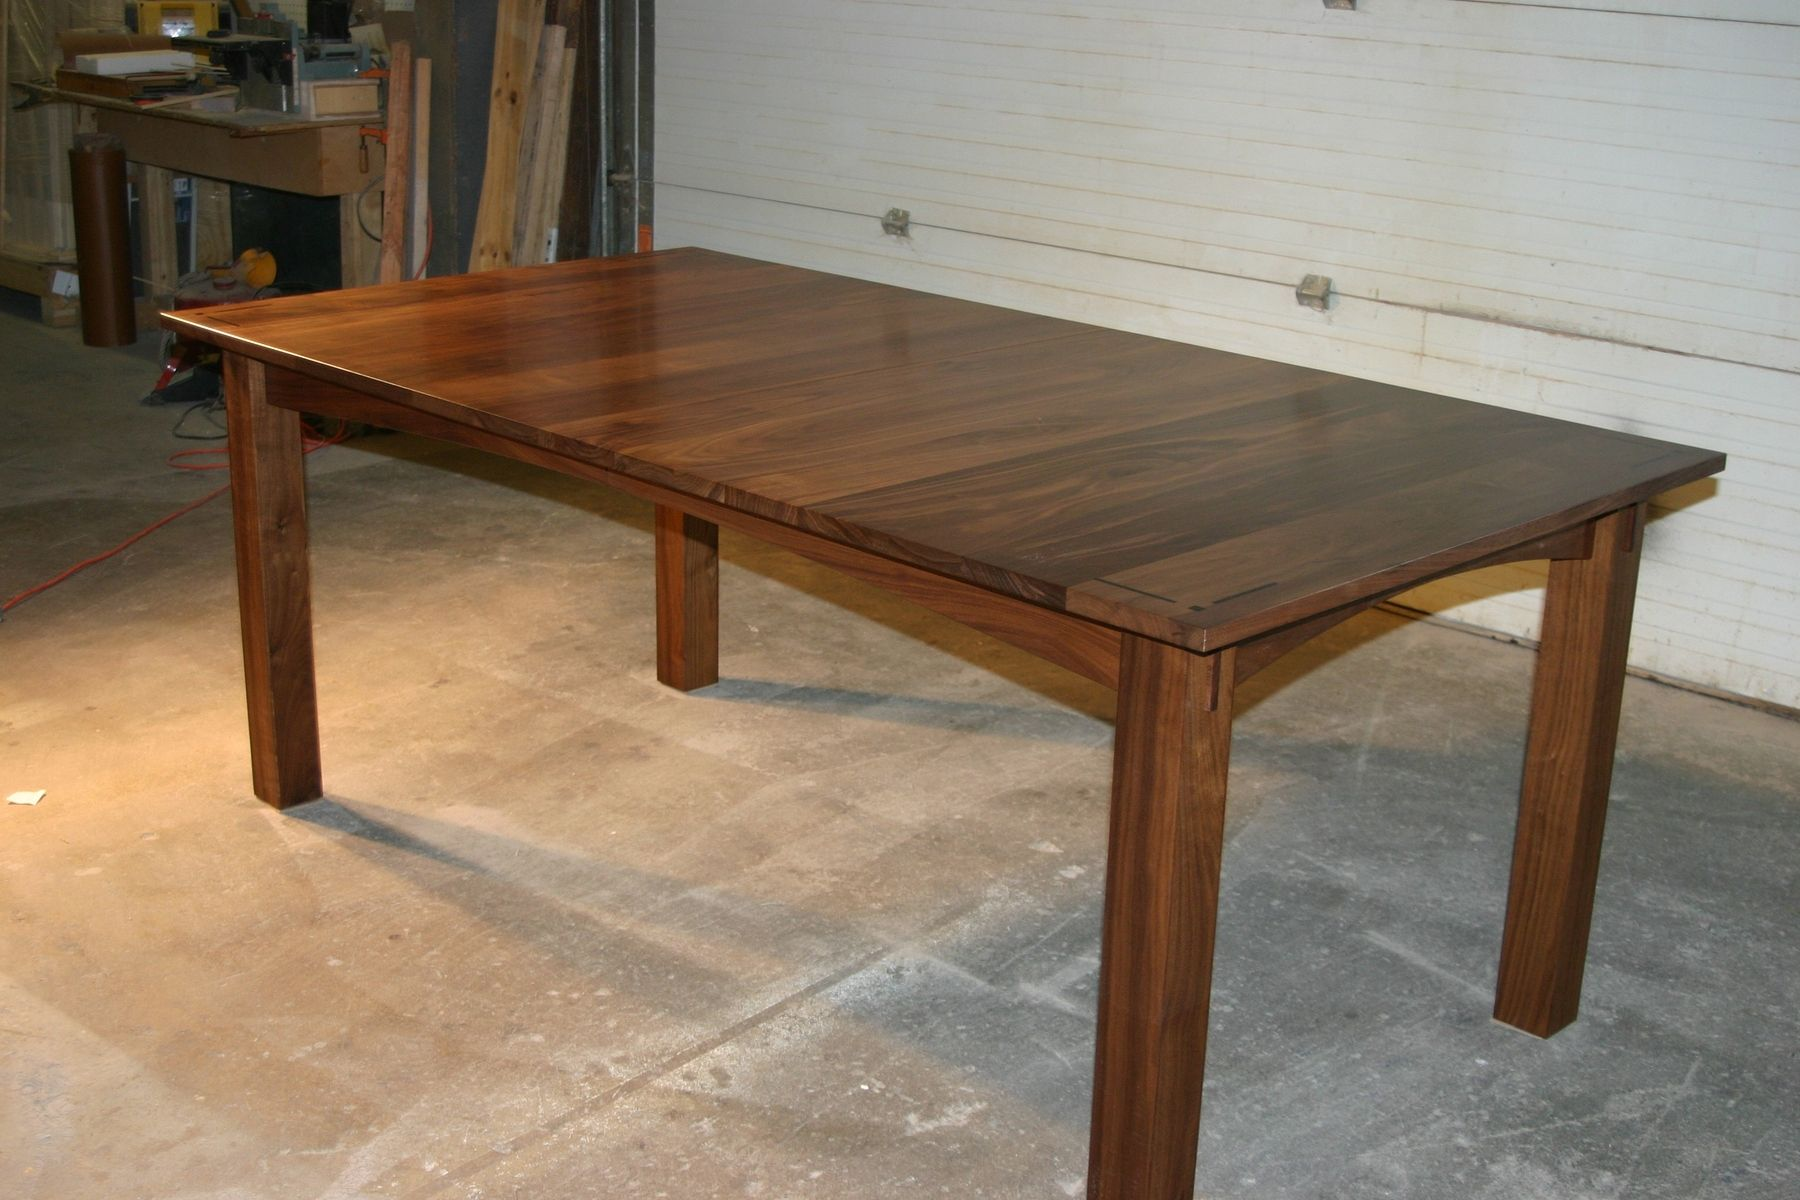 Handmade Walnut Dining Table By Canton Studio CustomMadecom - Custom dining room table and chairs